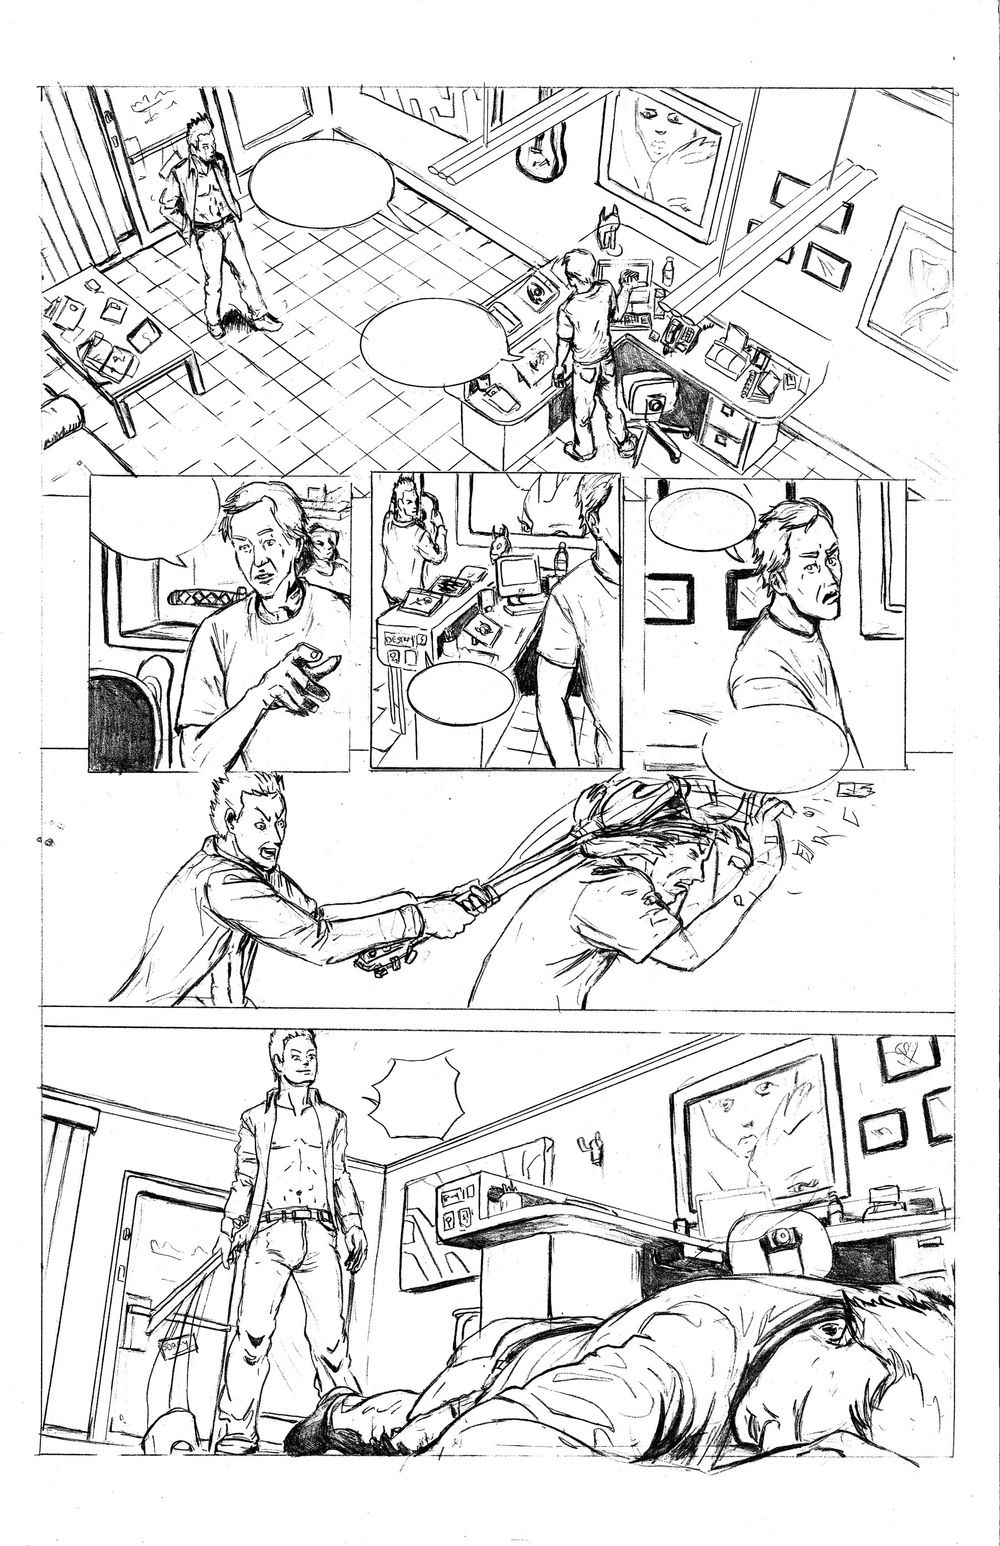 Tattoo Parlor Attack Page 3 Pencils.jpg